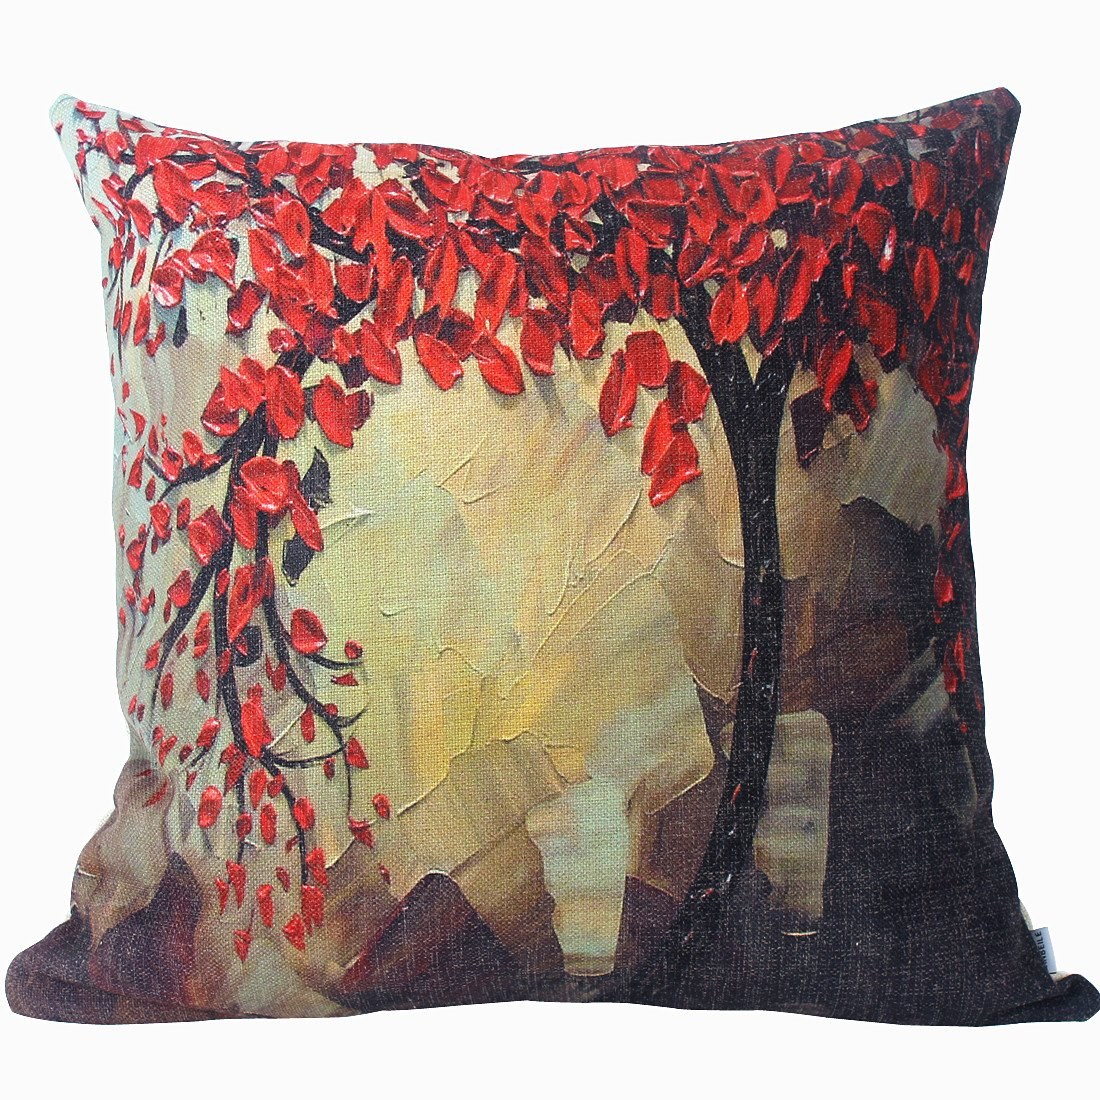 Oil Painting Cotton Linen Throw Pillow Cover Red Flower Black Tree Decorative Cushion